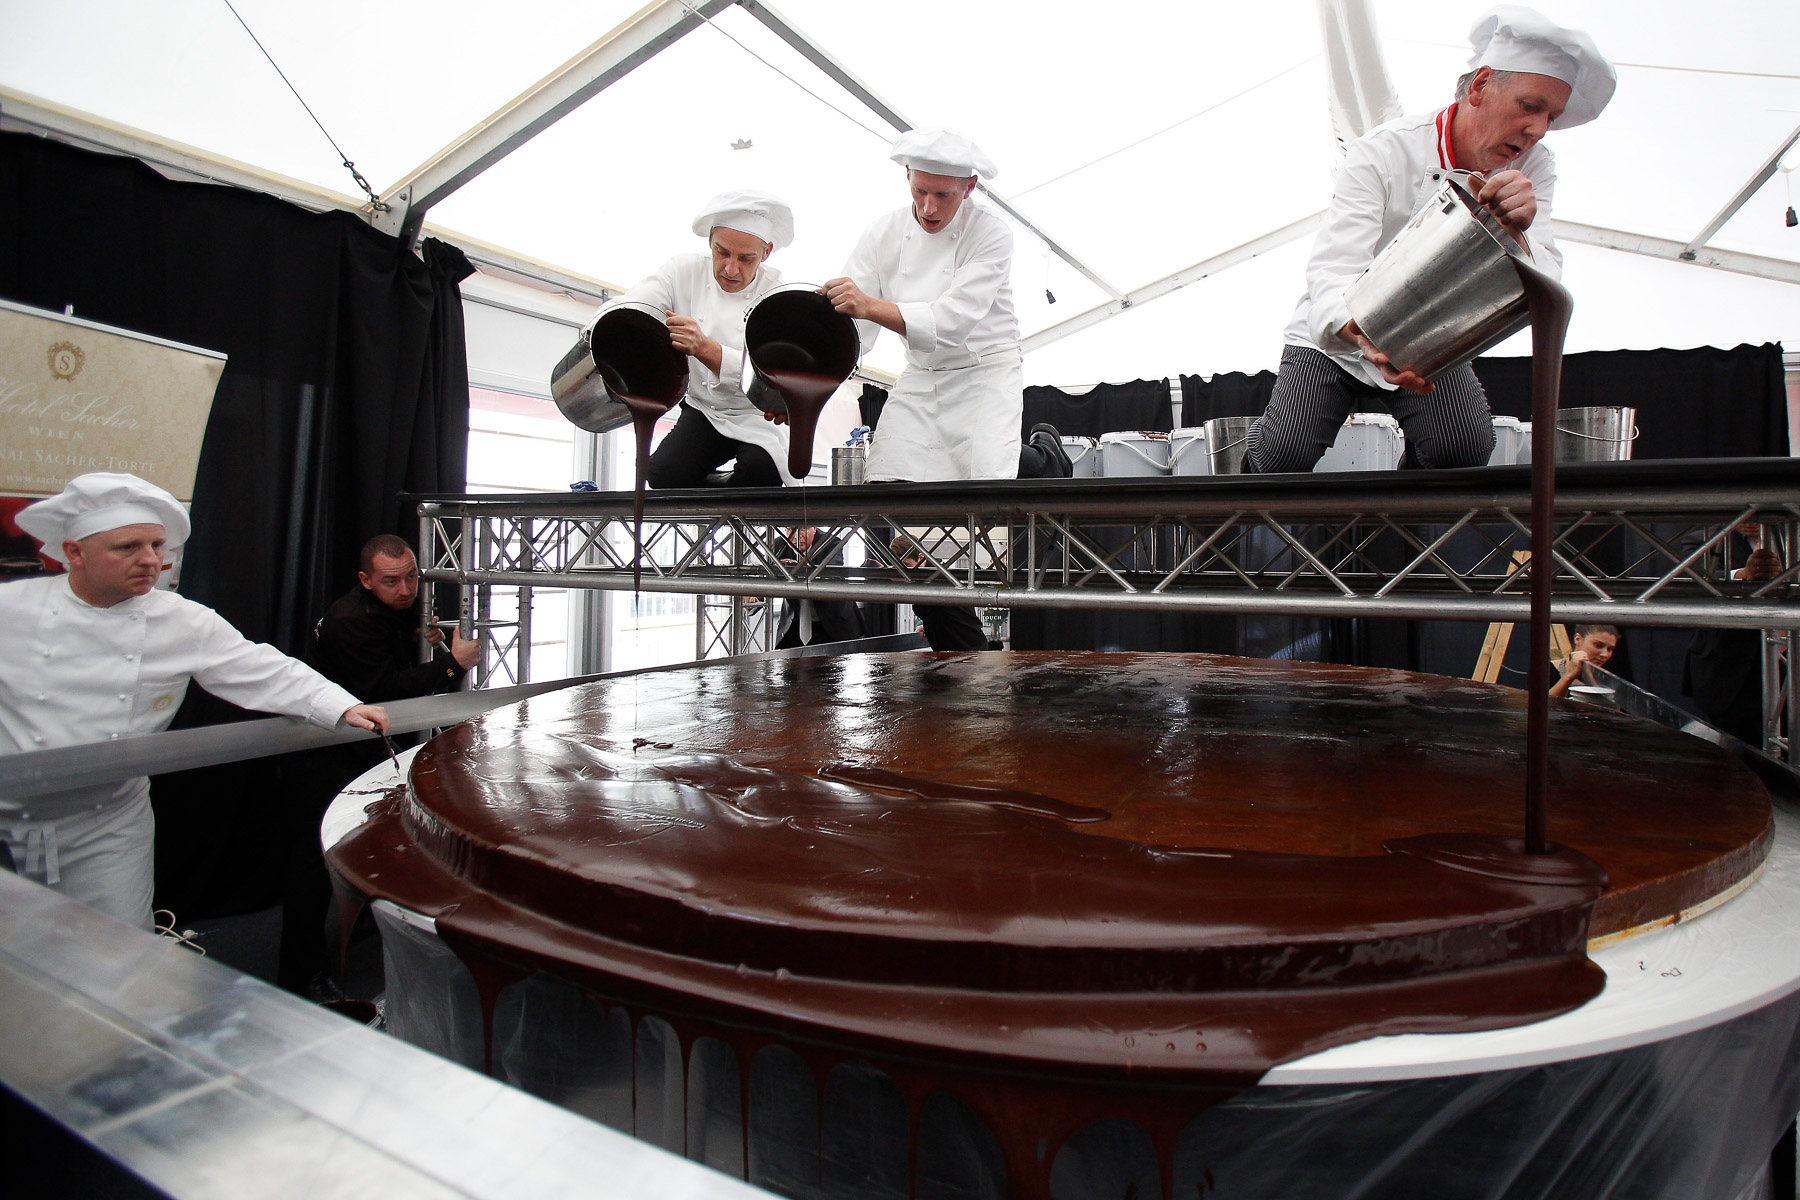 Confectioners glaze the world's largest original Sacher-torte with chocolate in Ljubljana, Slovenia, Sept. 21, 2016. The largest original Sacher-cake was made to mark the ending of the Vienna Days in Ljubljana.